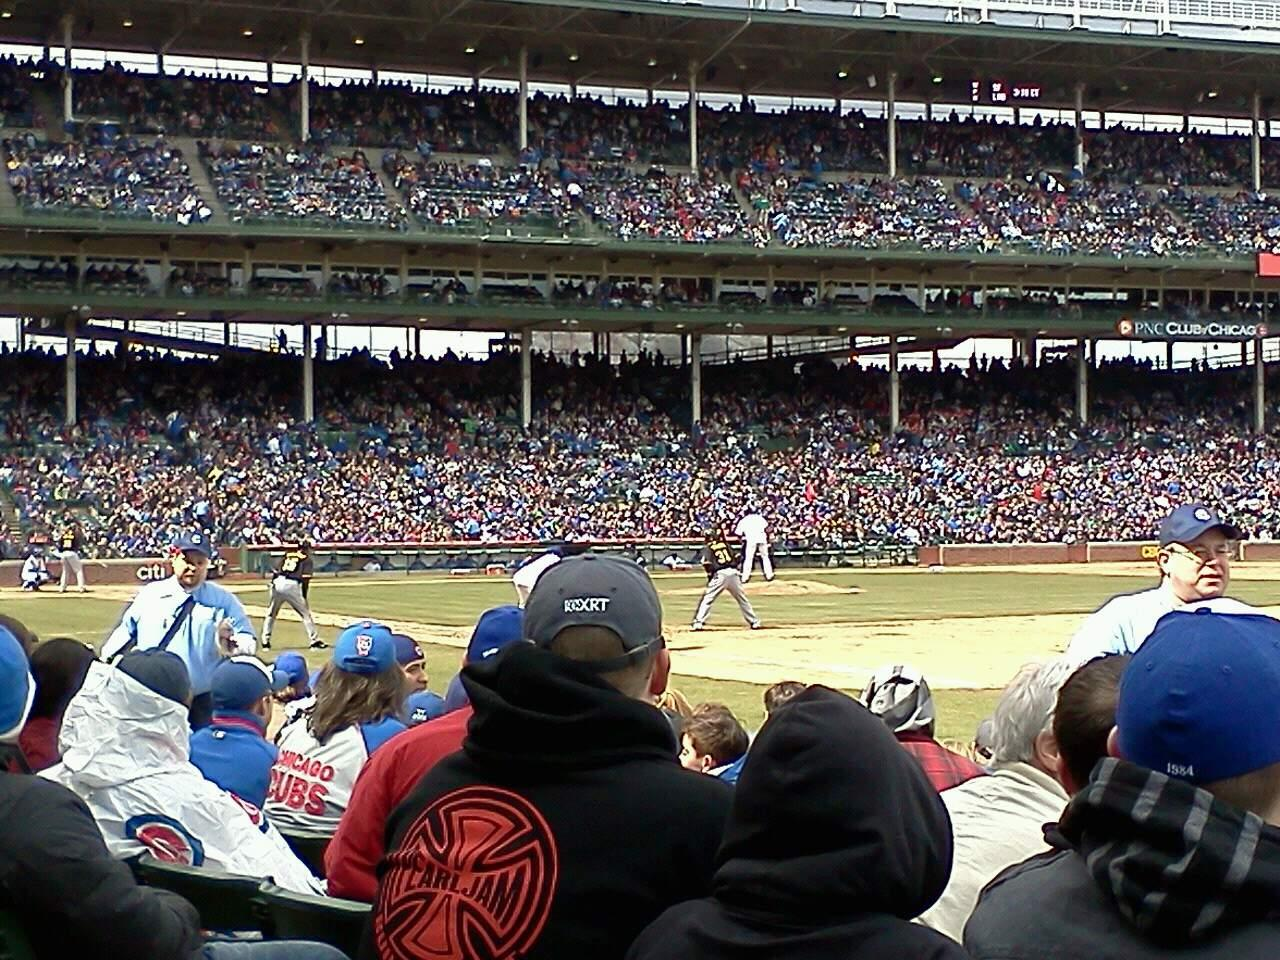 Wrigley Field Section 29 Row 10 Seat 6